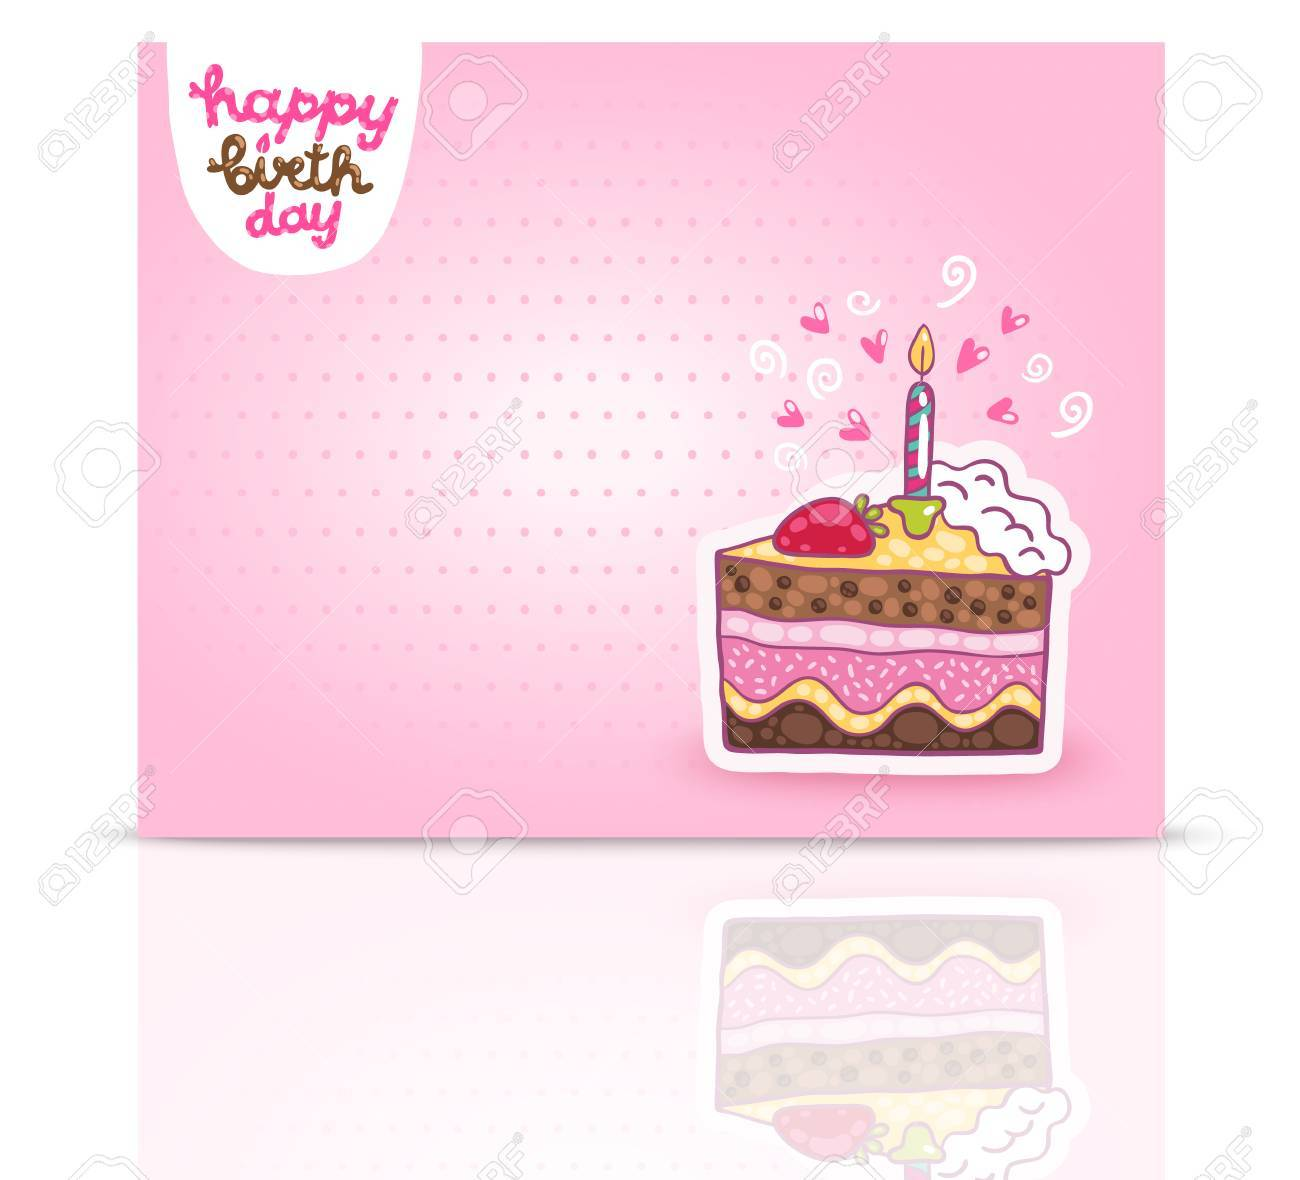 Happy Birthday Card Background With Cake. Vector Holiday Party Template  Stock Vector   27665524